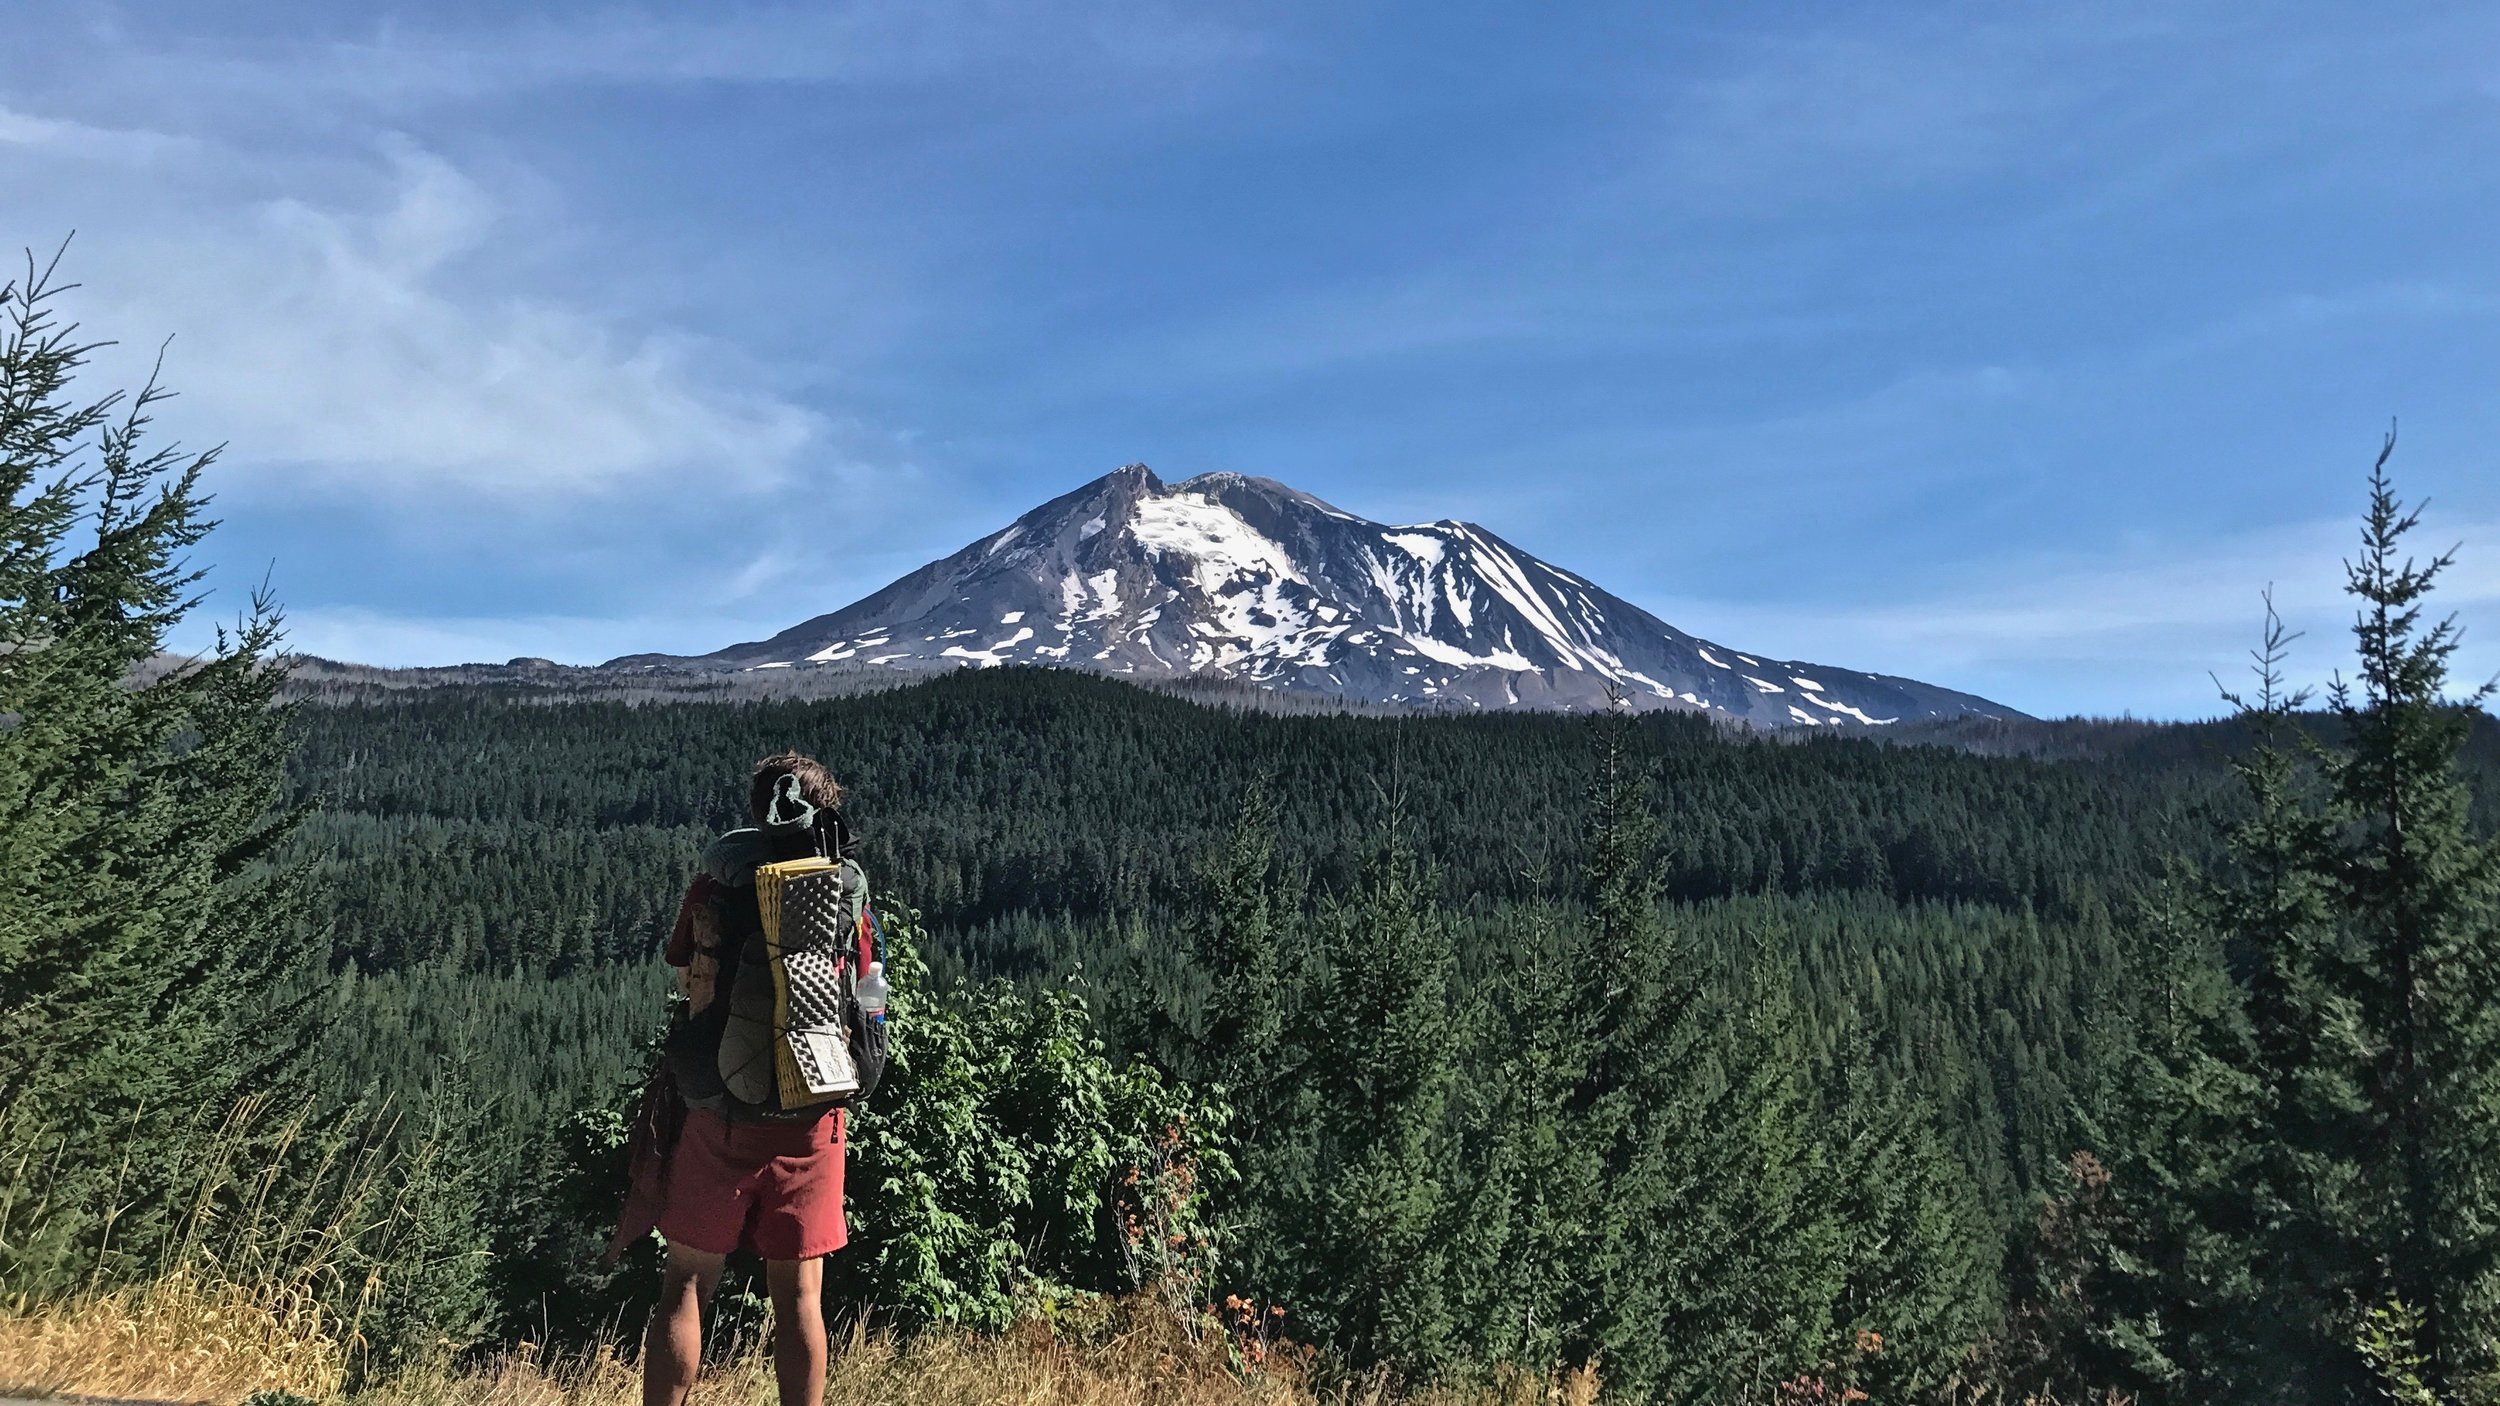 Alex and Mount Adams on the road walk back to trail